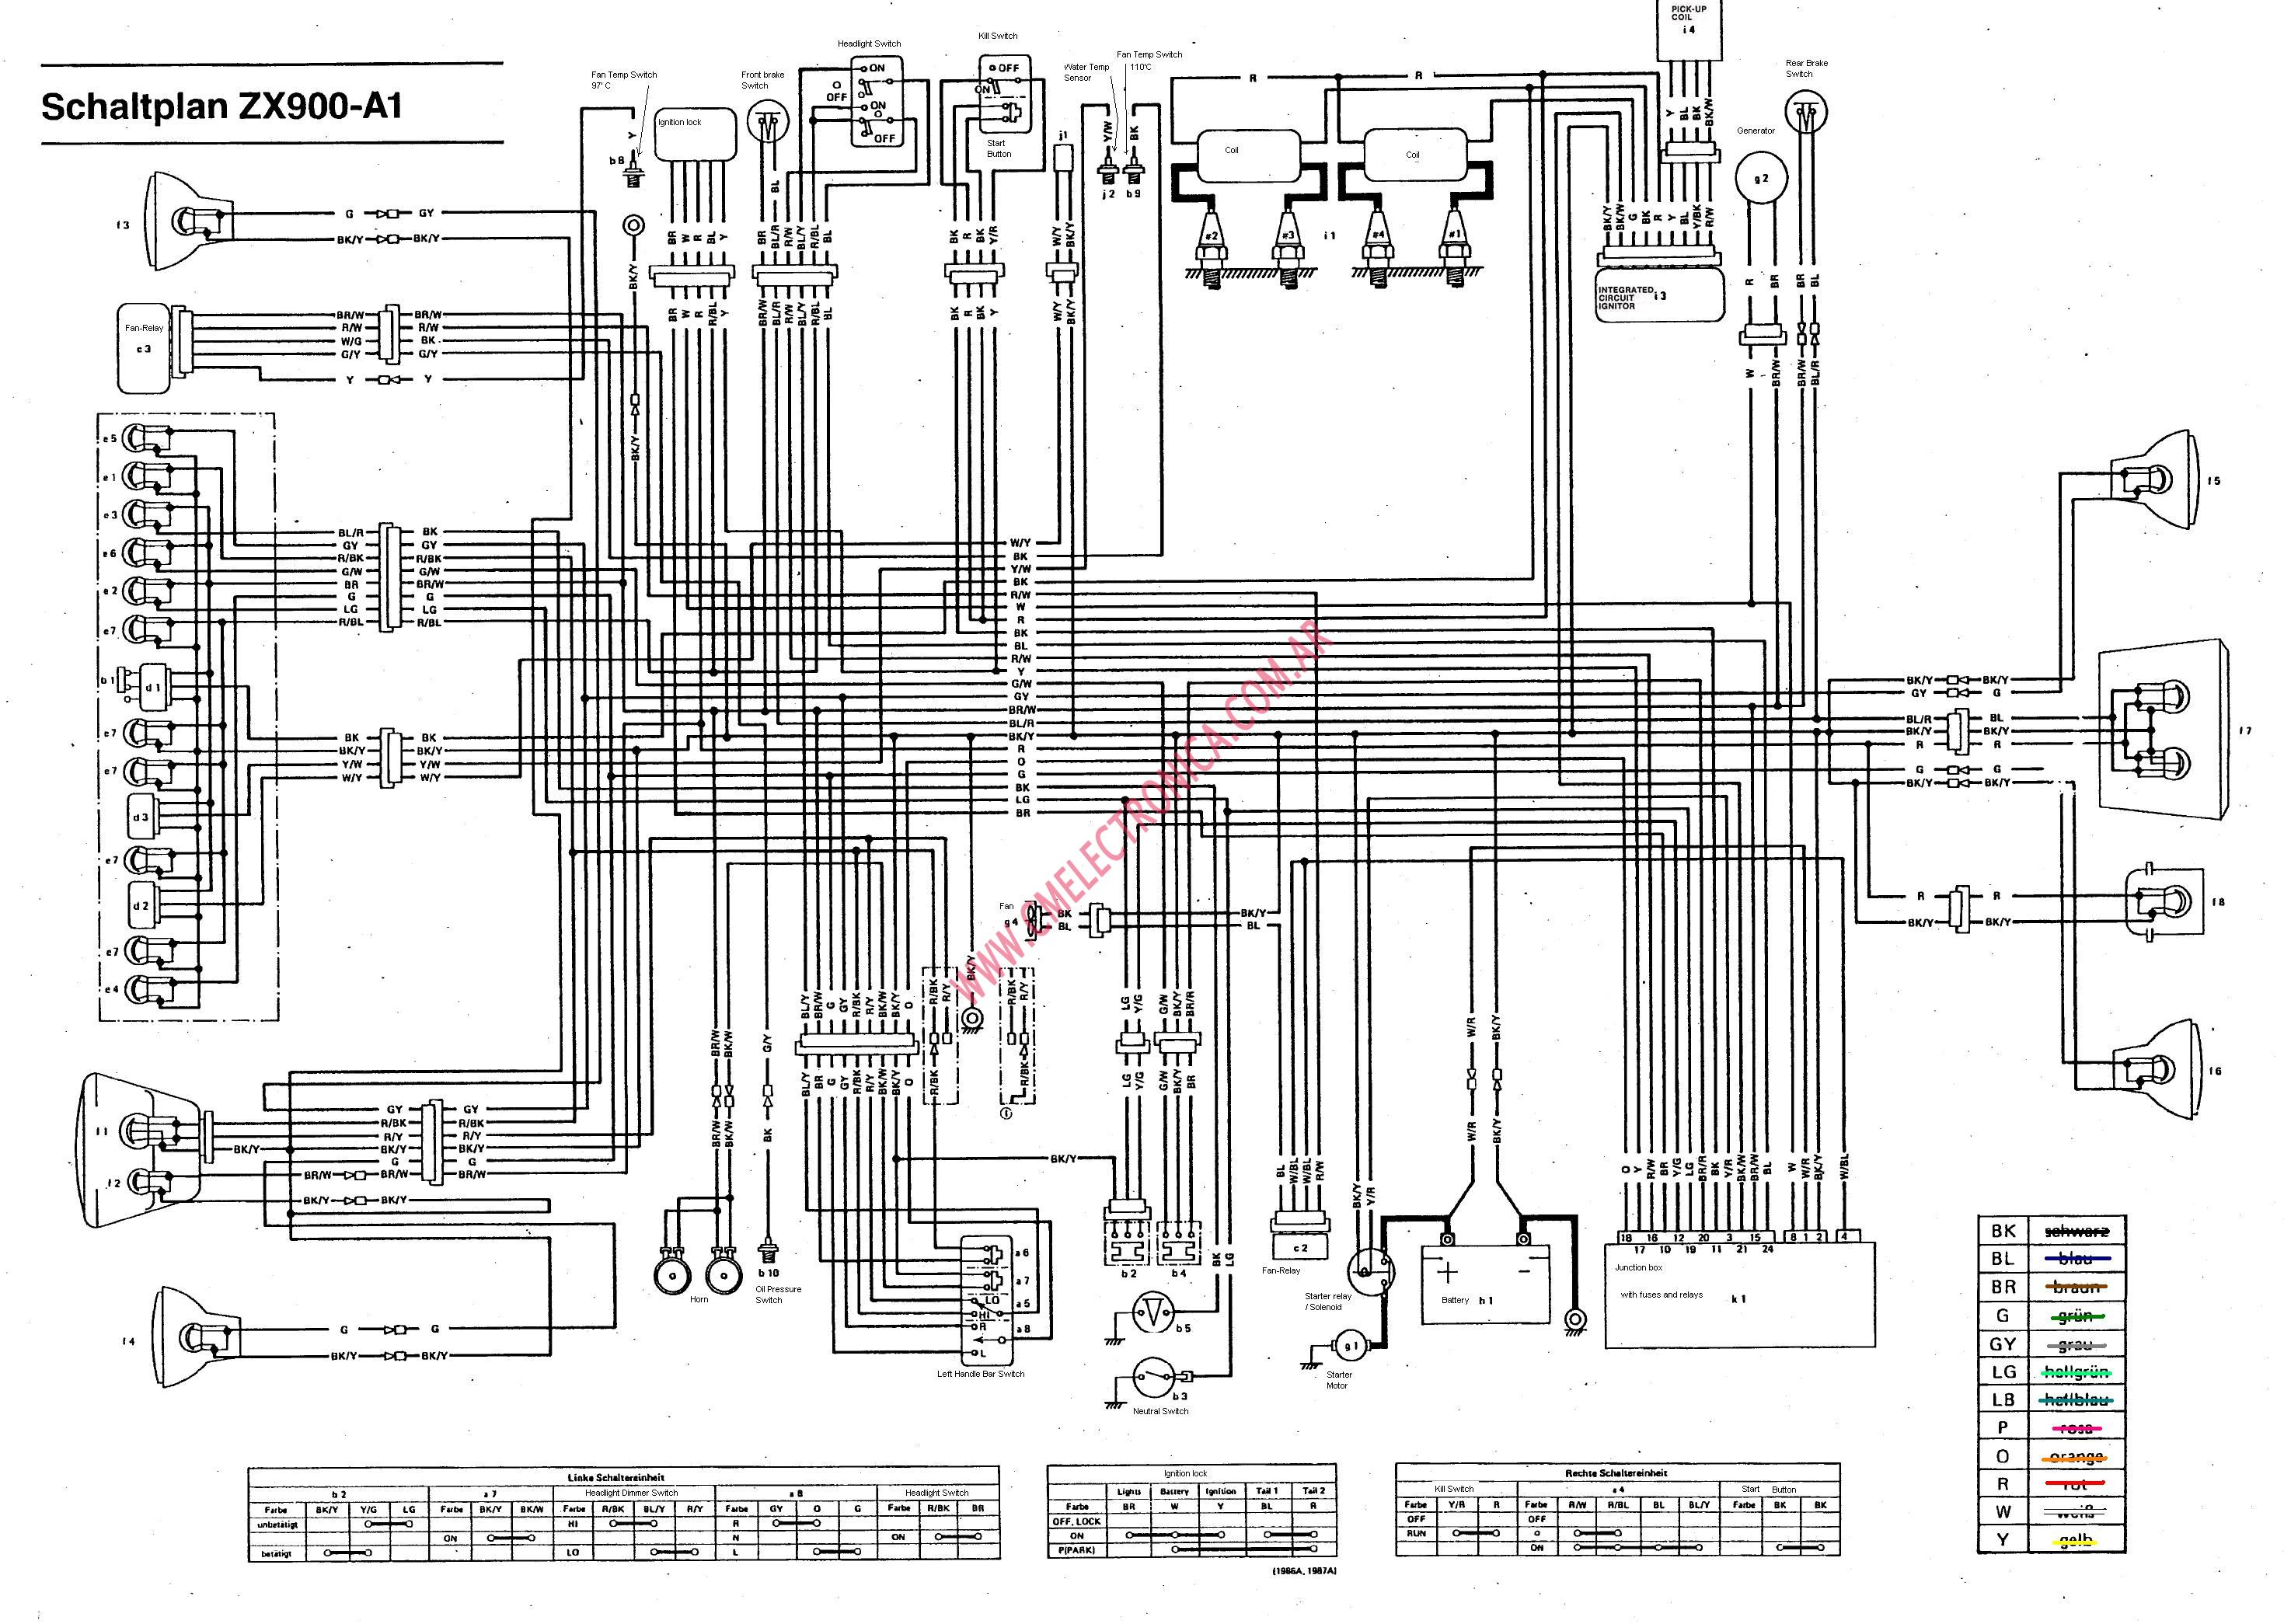 1984 Kawasaki Voyager Wiring Diagram Great Installation Of Free Motorcycle Diagrams 85 Xr 600 83 Blog Rh 15 Fuerstliche Weine De Kz1300 Specs 84